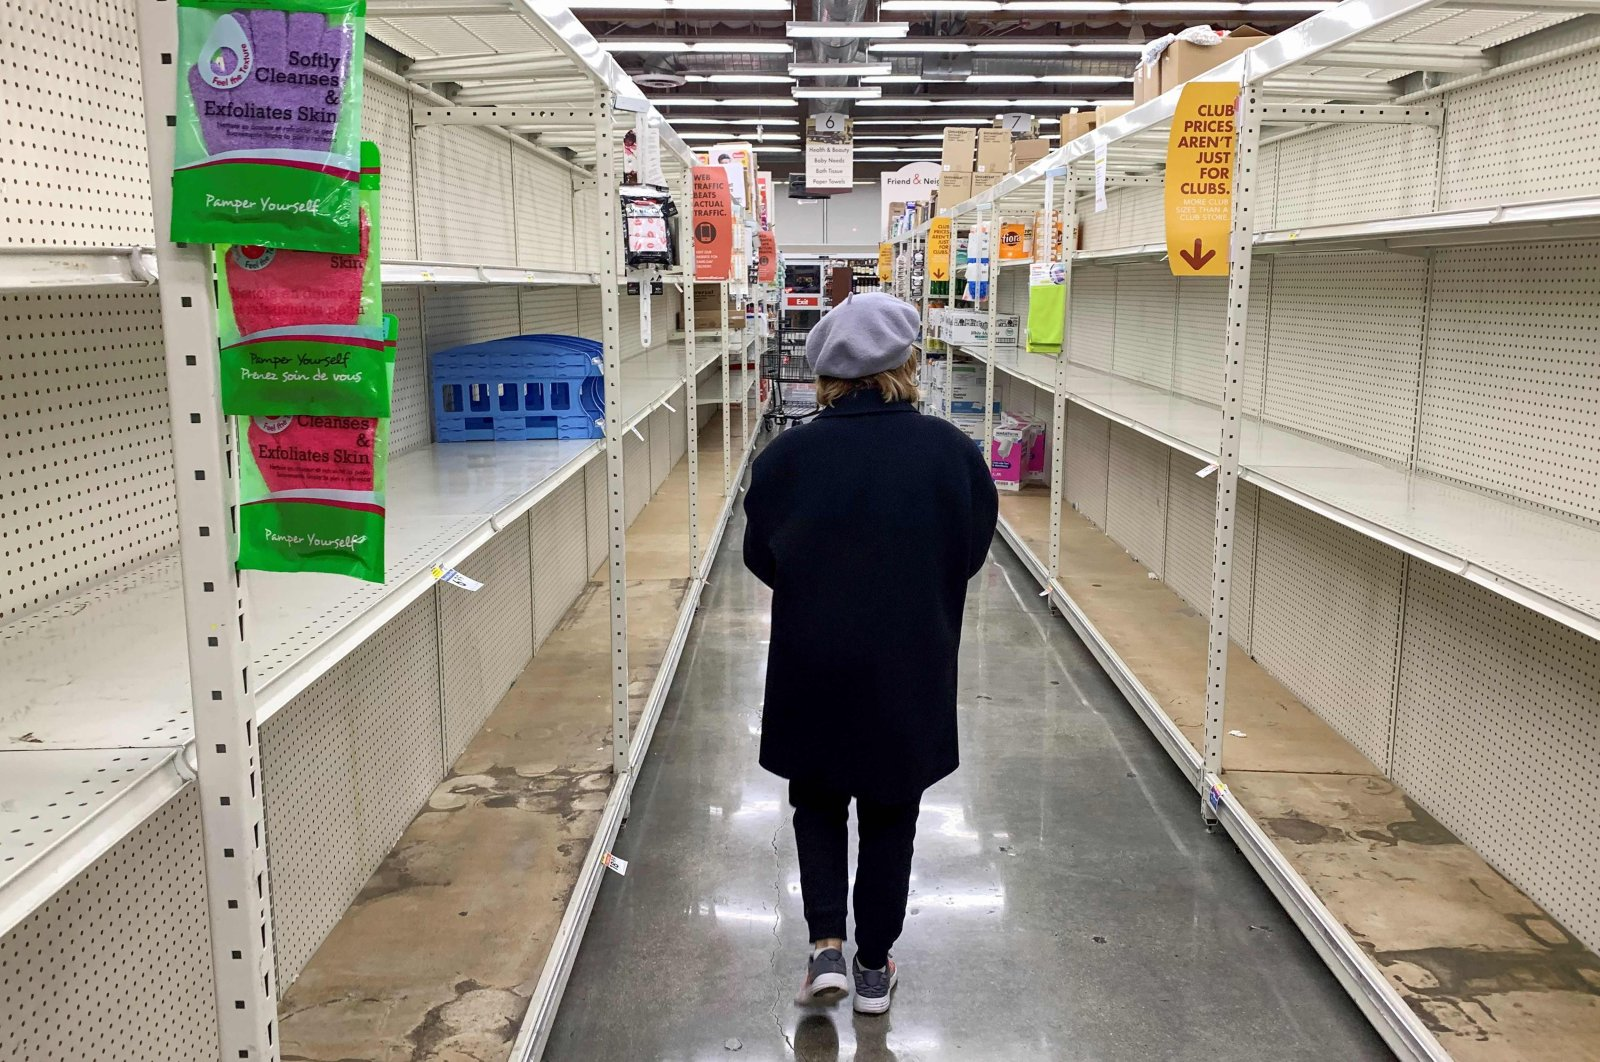 A shopper walks past empty shelves normally stocked with soaps, sanitizers, paper towels, and toilet paper at a Smart & Final grocery store in Glendale, California, March 7, 2020. (AFP Photo)